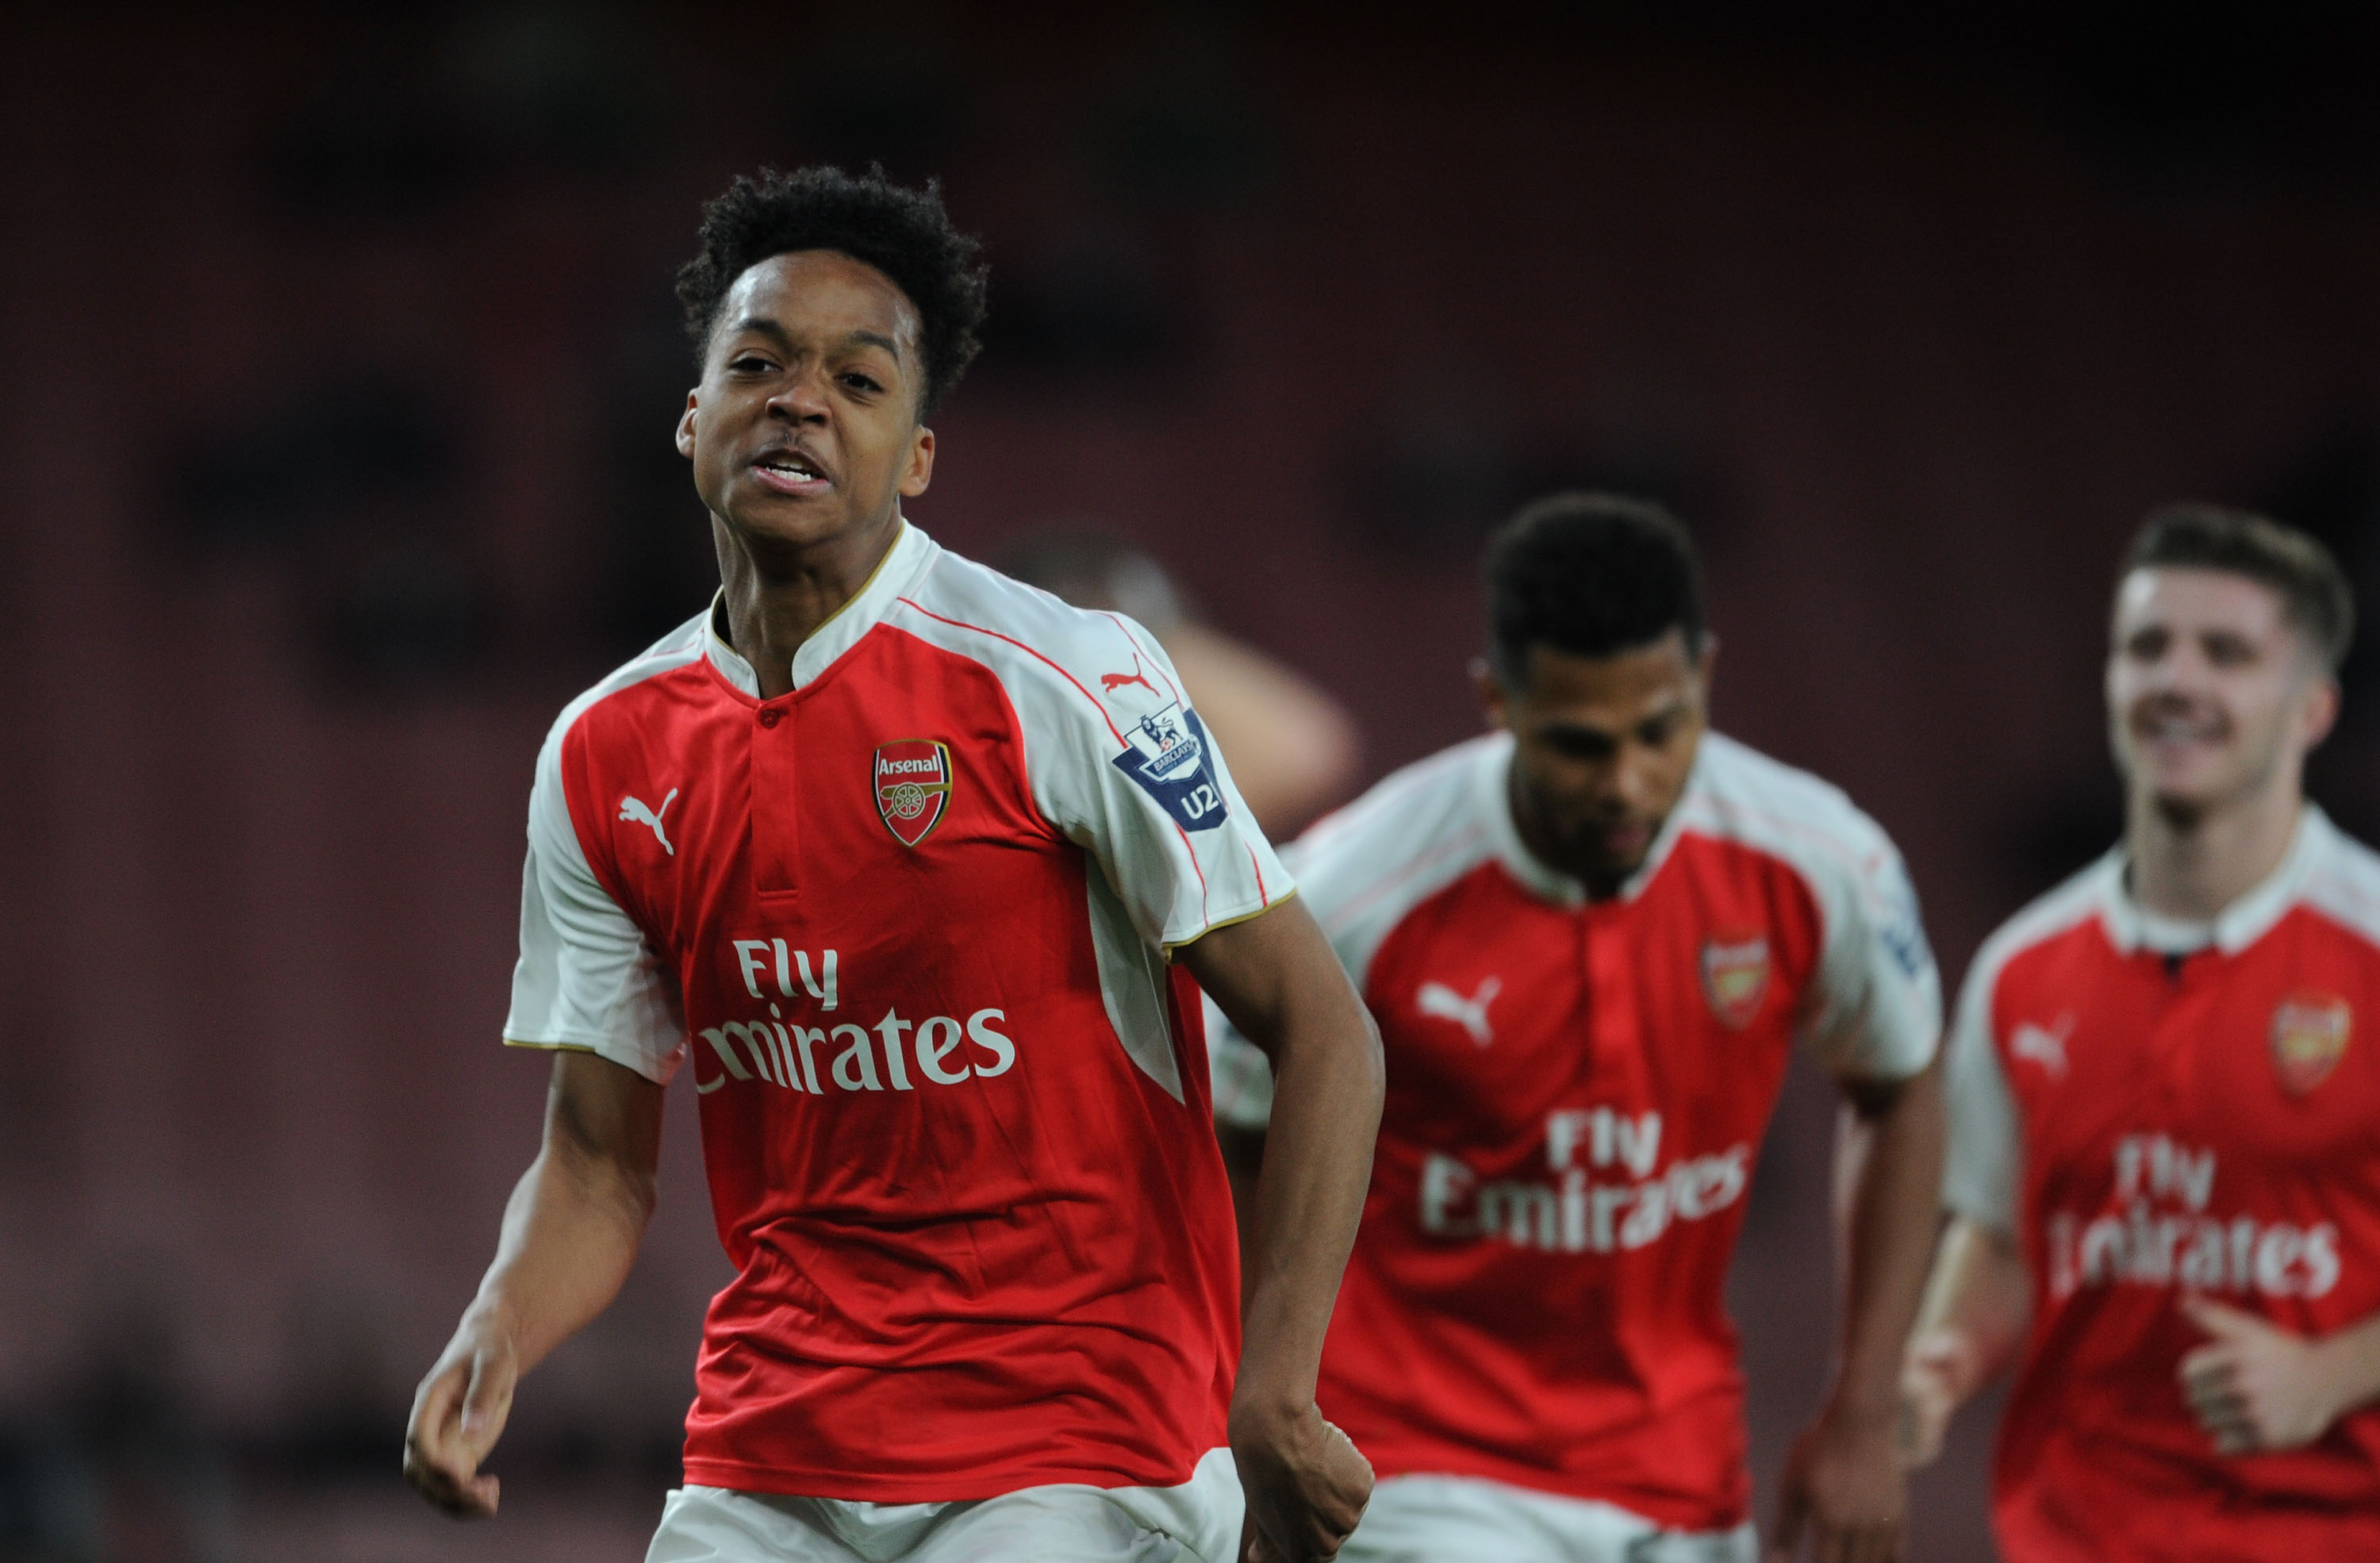 Is Chris Willock the next talented youngster to break into Arsenal's first team?